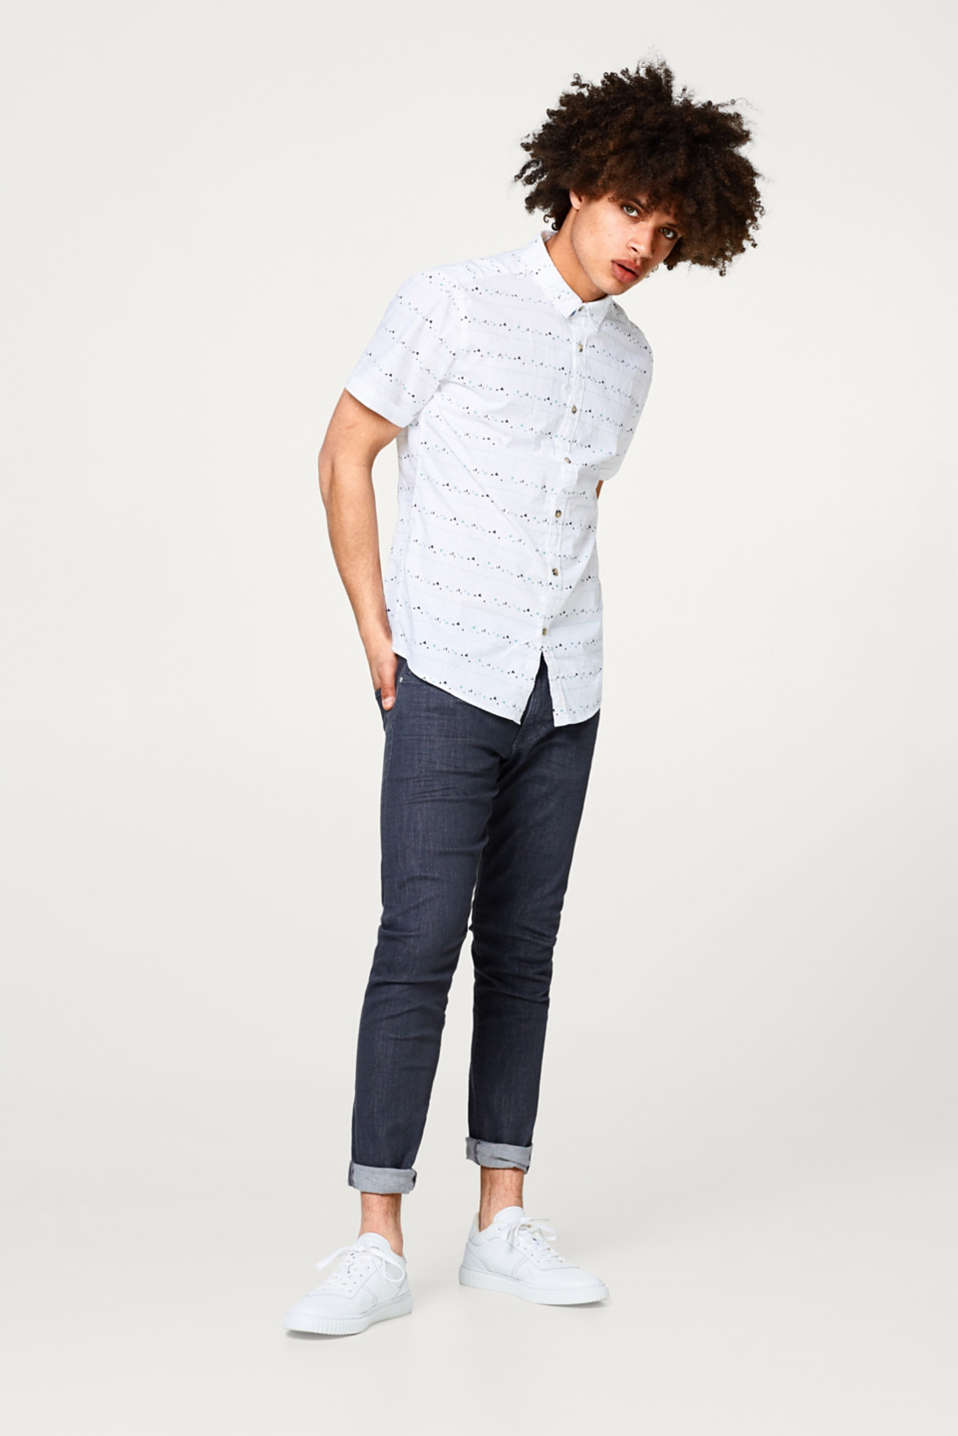 Short sleeve shirt with a graphic minimalist print